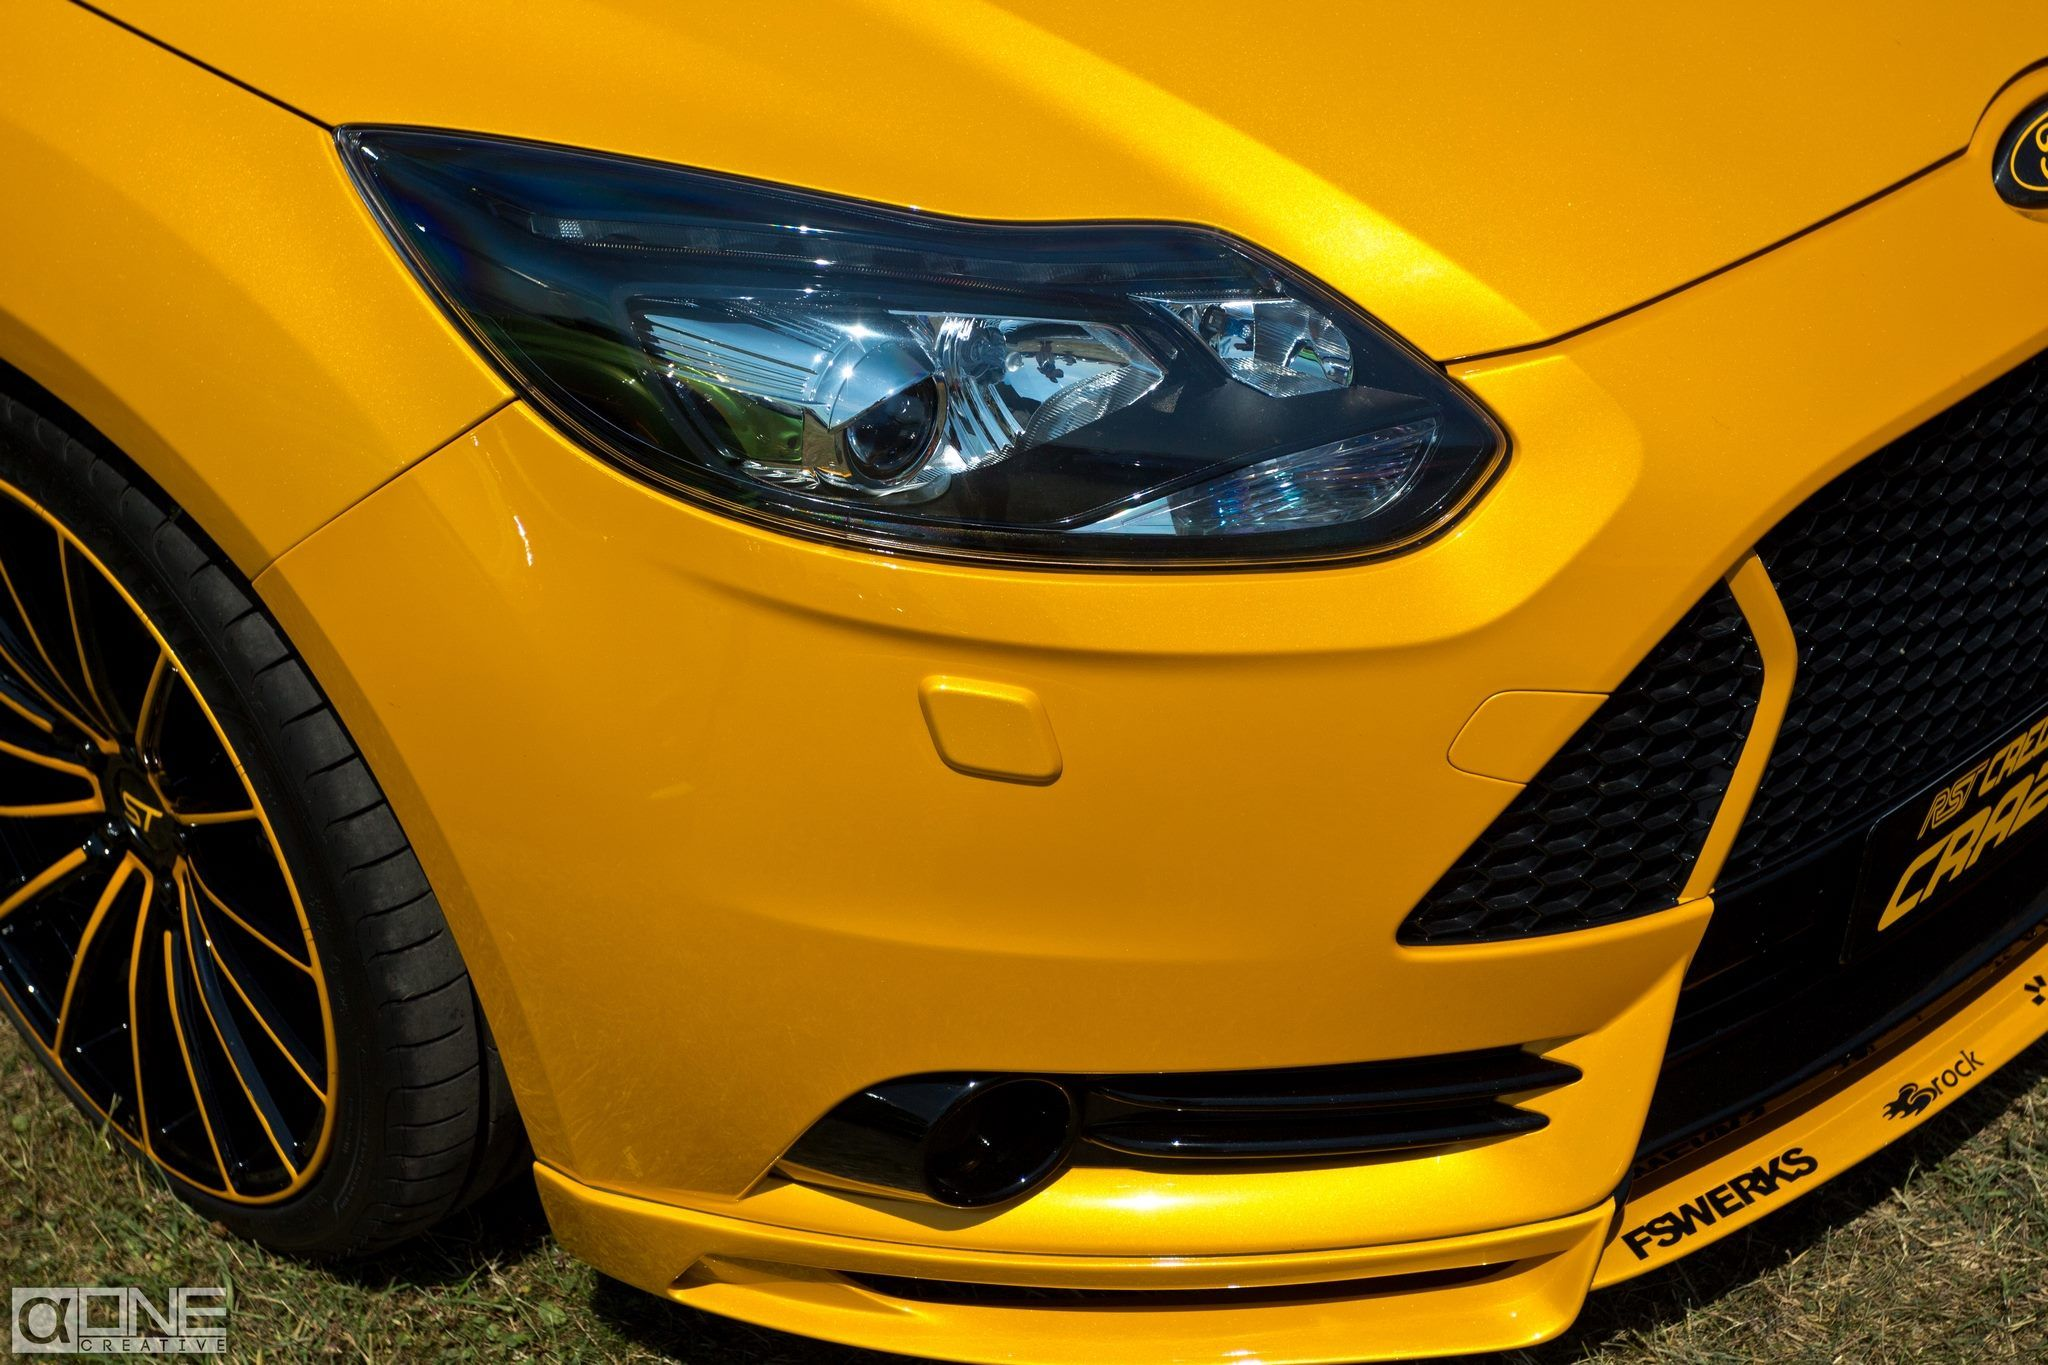 ford focus st 3 tuning big rims front bumper tuning